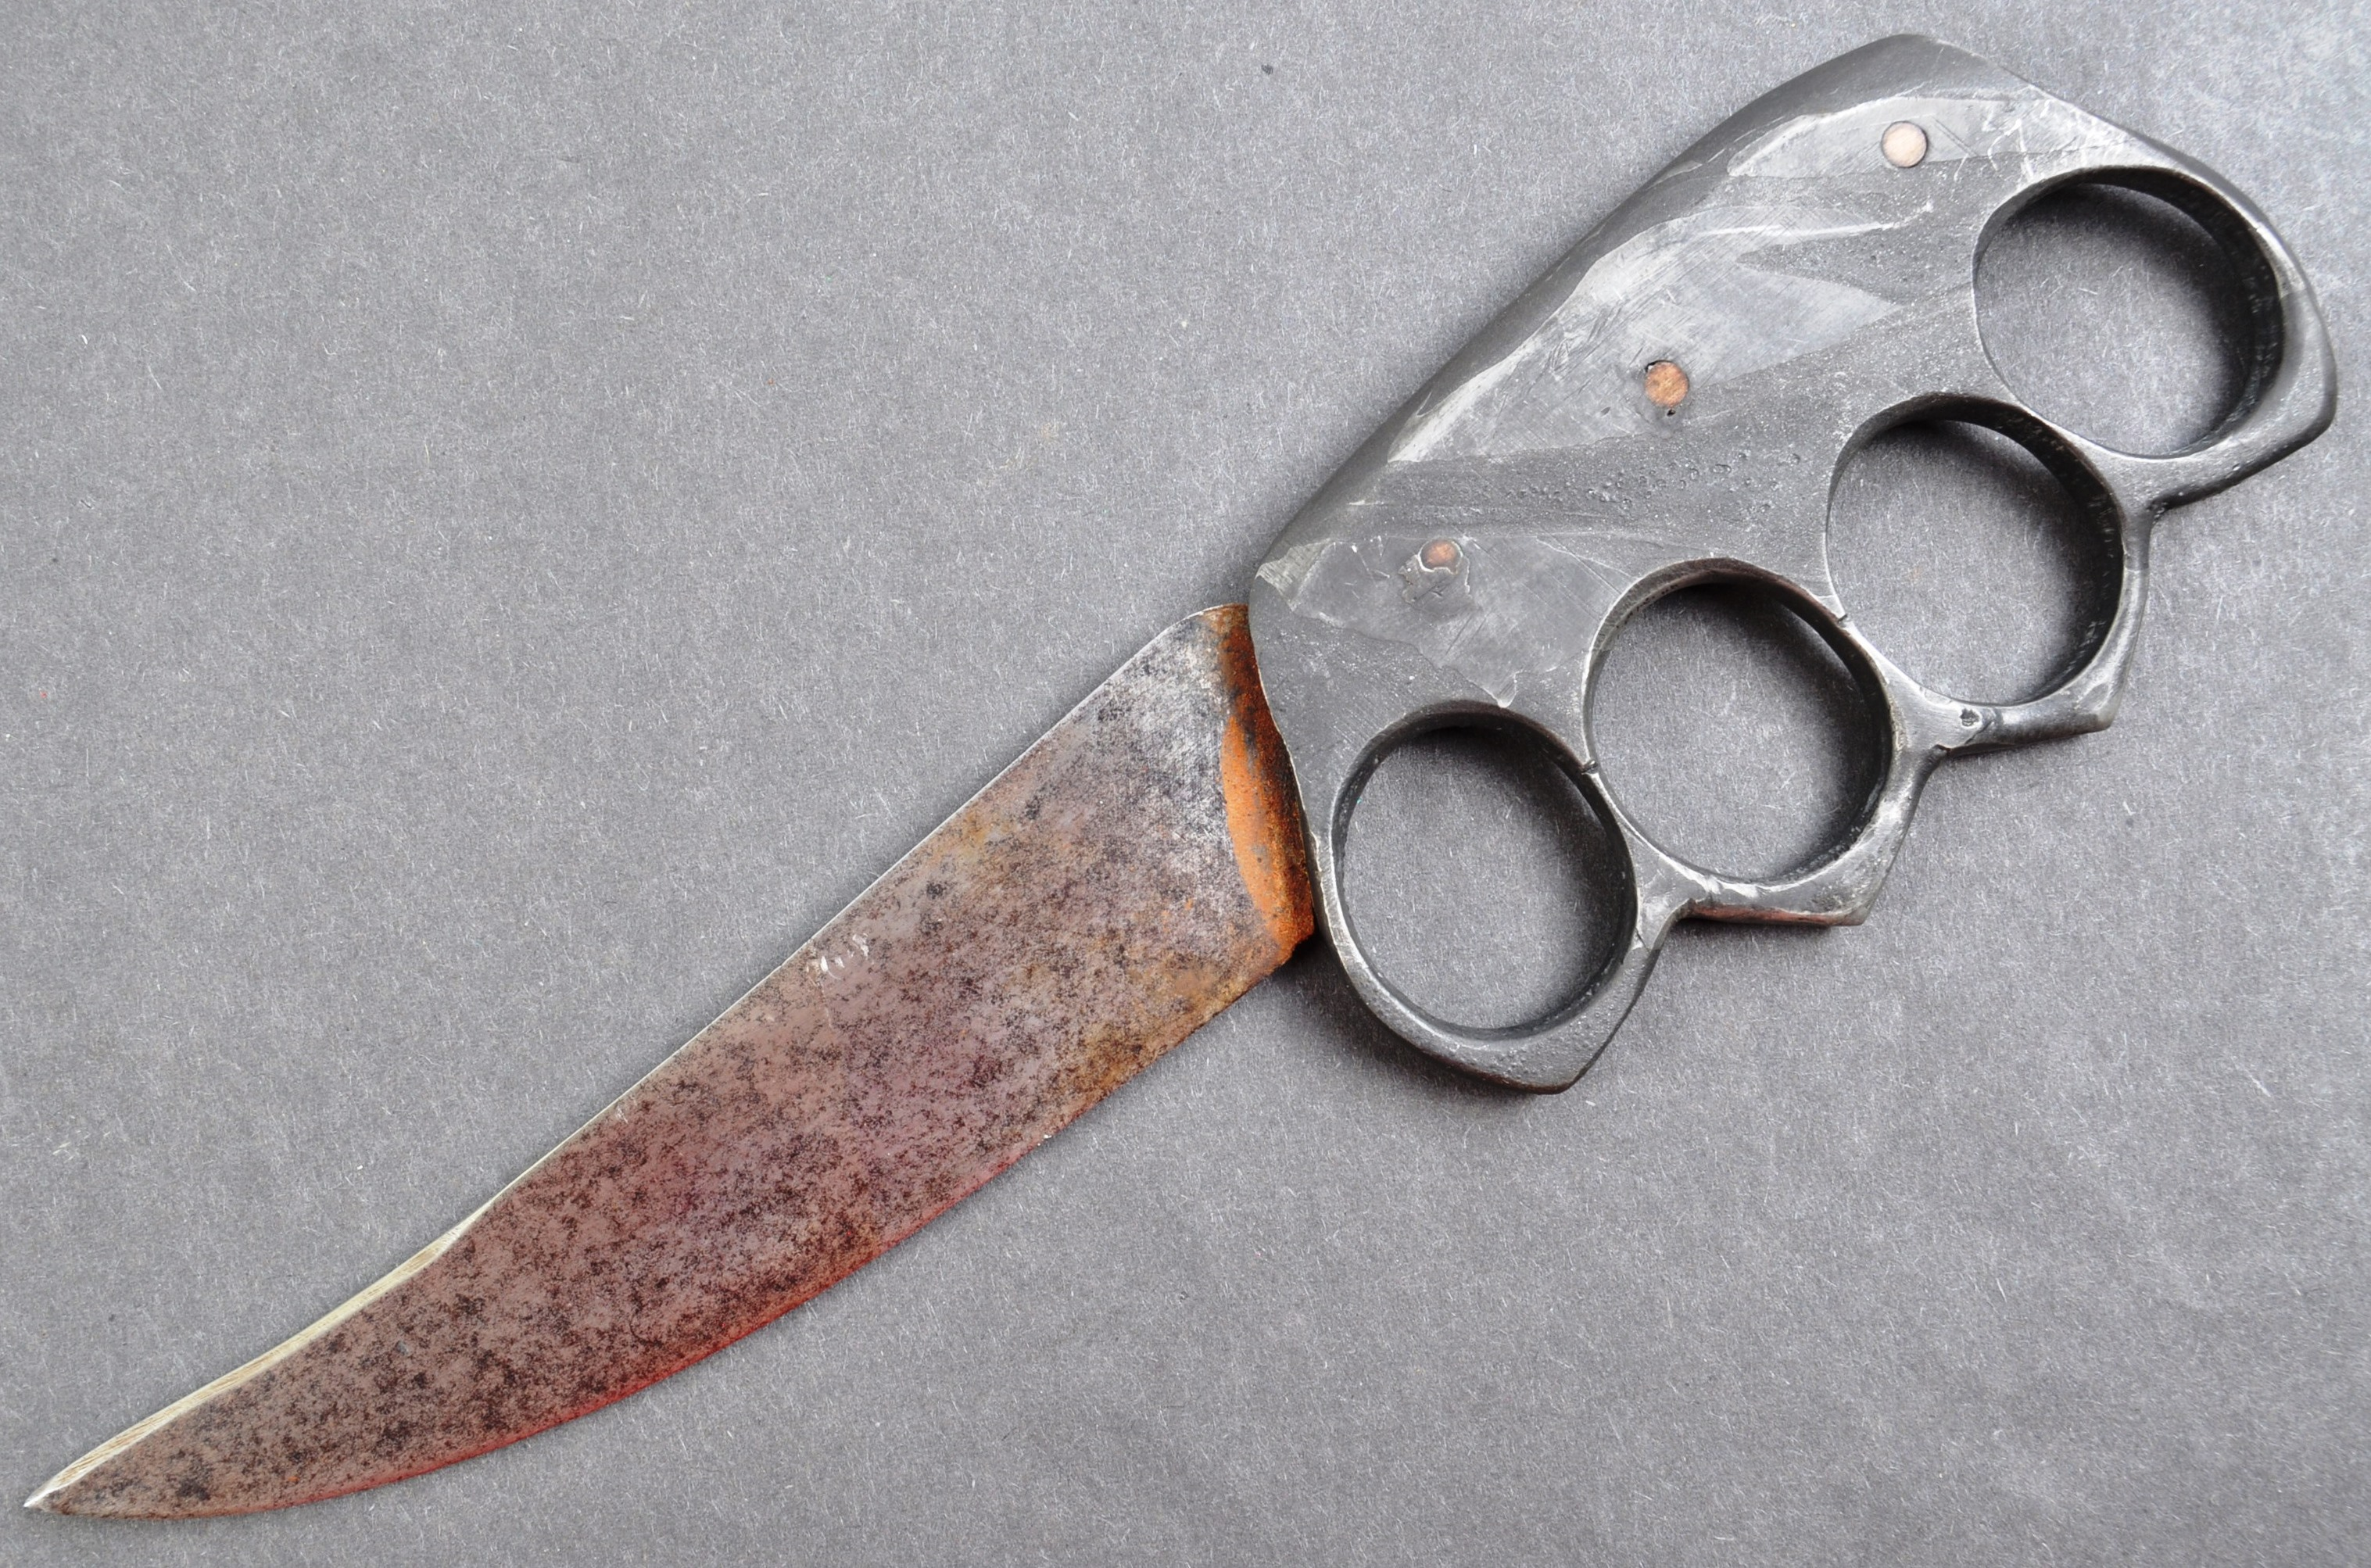 RARE WWI FIRST WORLD WAR TRENCH WARFARE KNUCKLEDUSTER KNIFE - Image 2 of 5